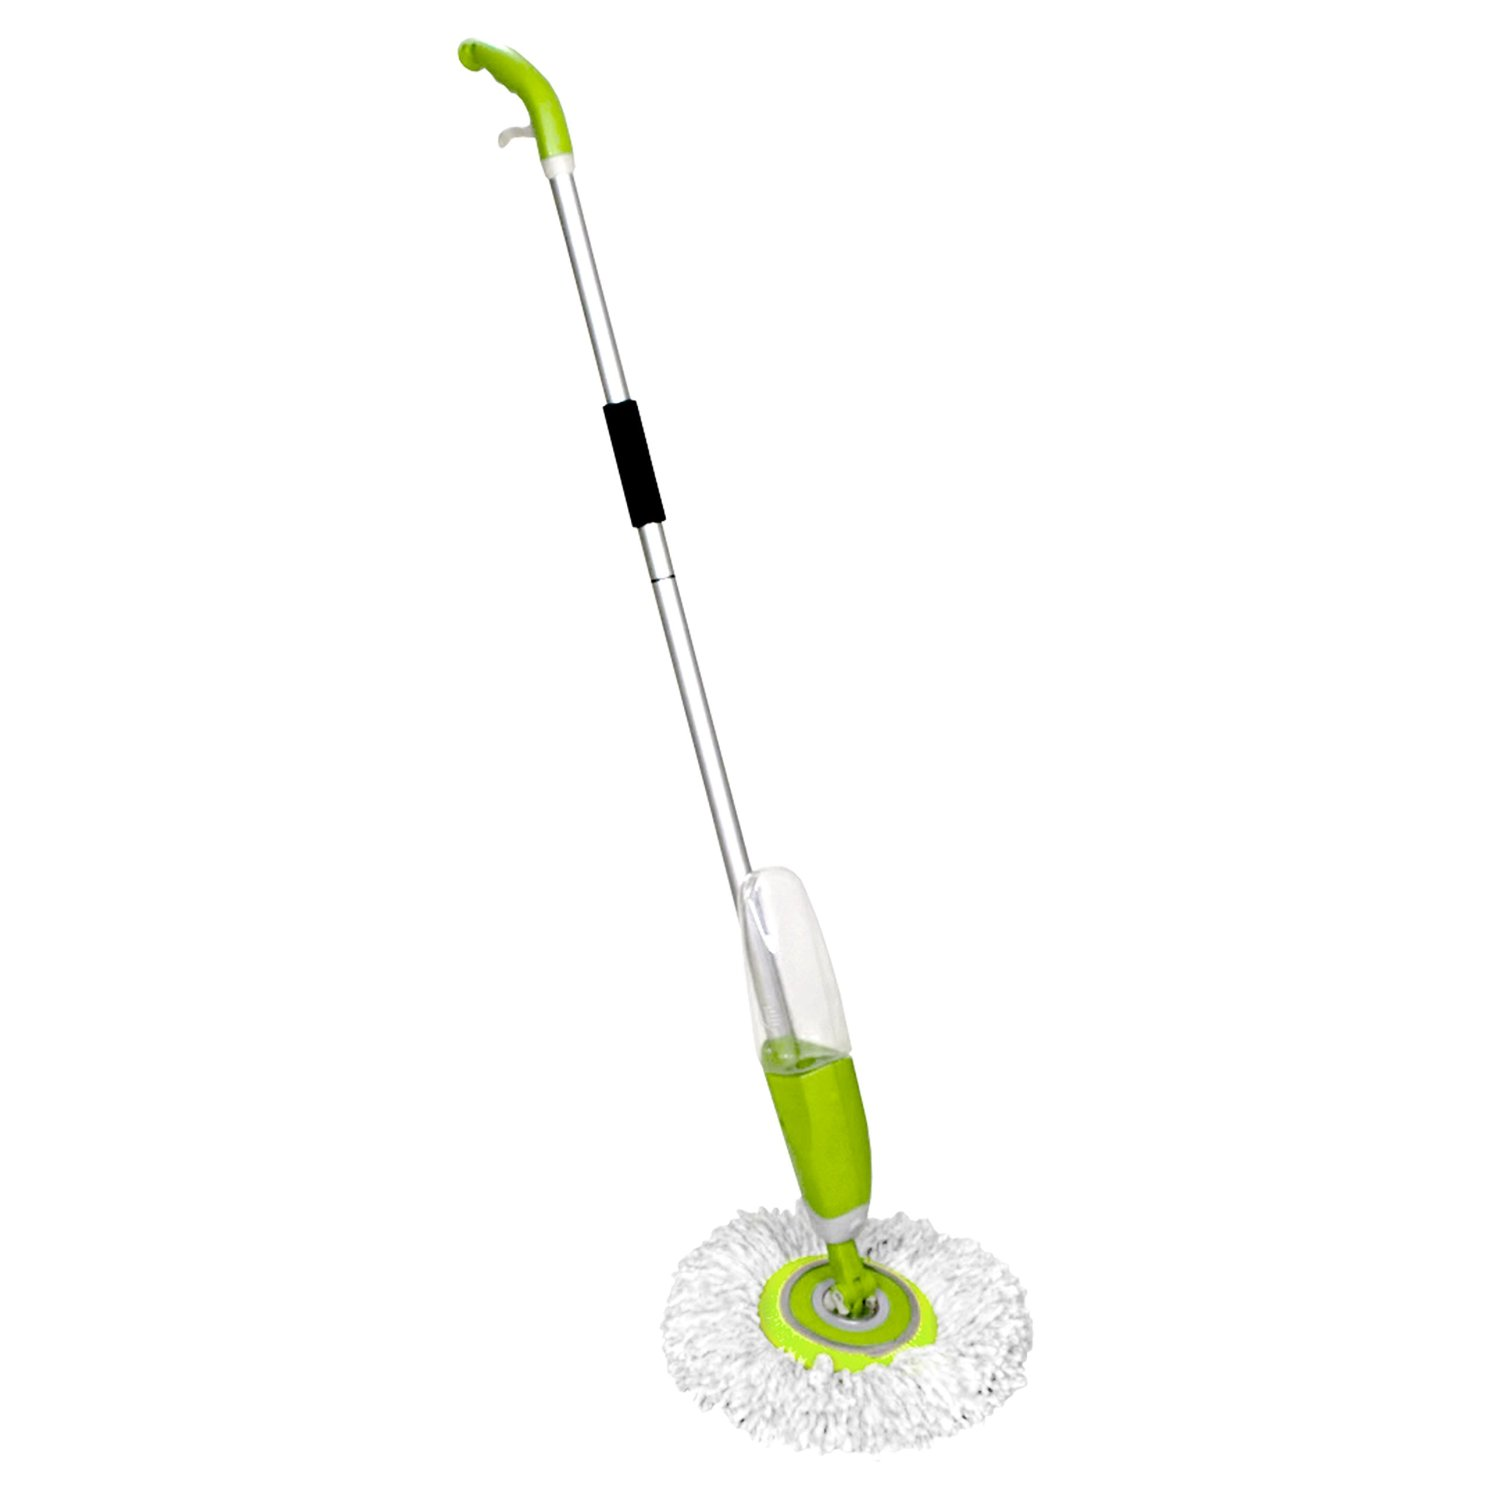 Shiwala Magic Mop, Super Absorbent Microfiber 360 Swivel Spray Mop